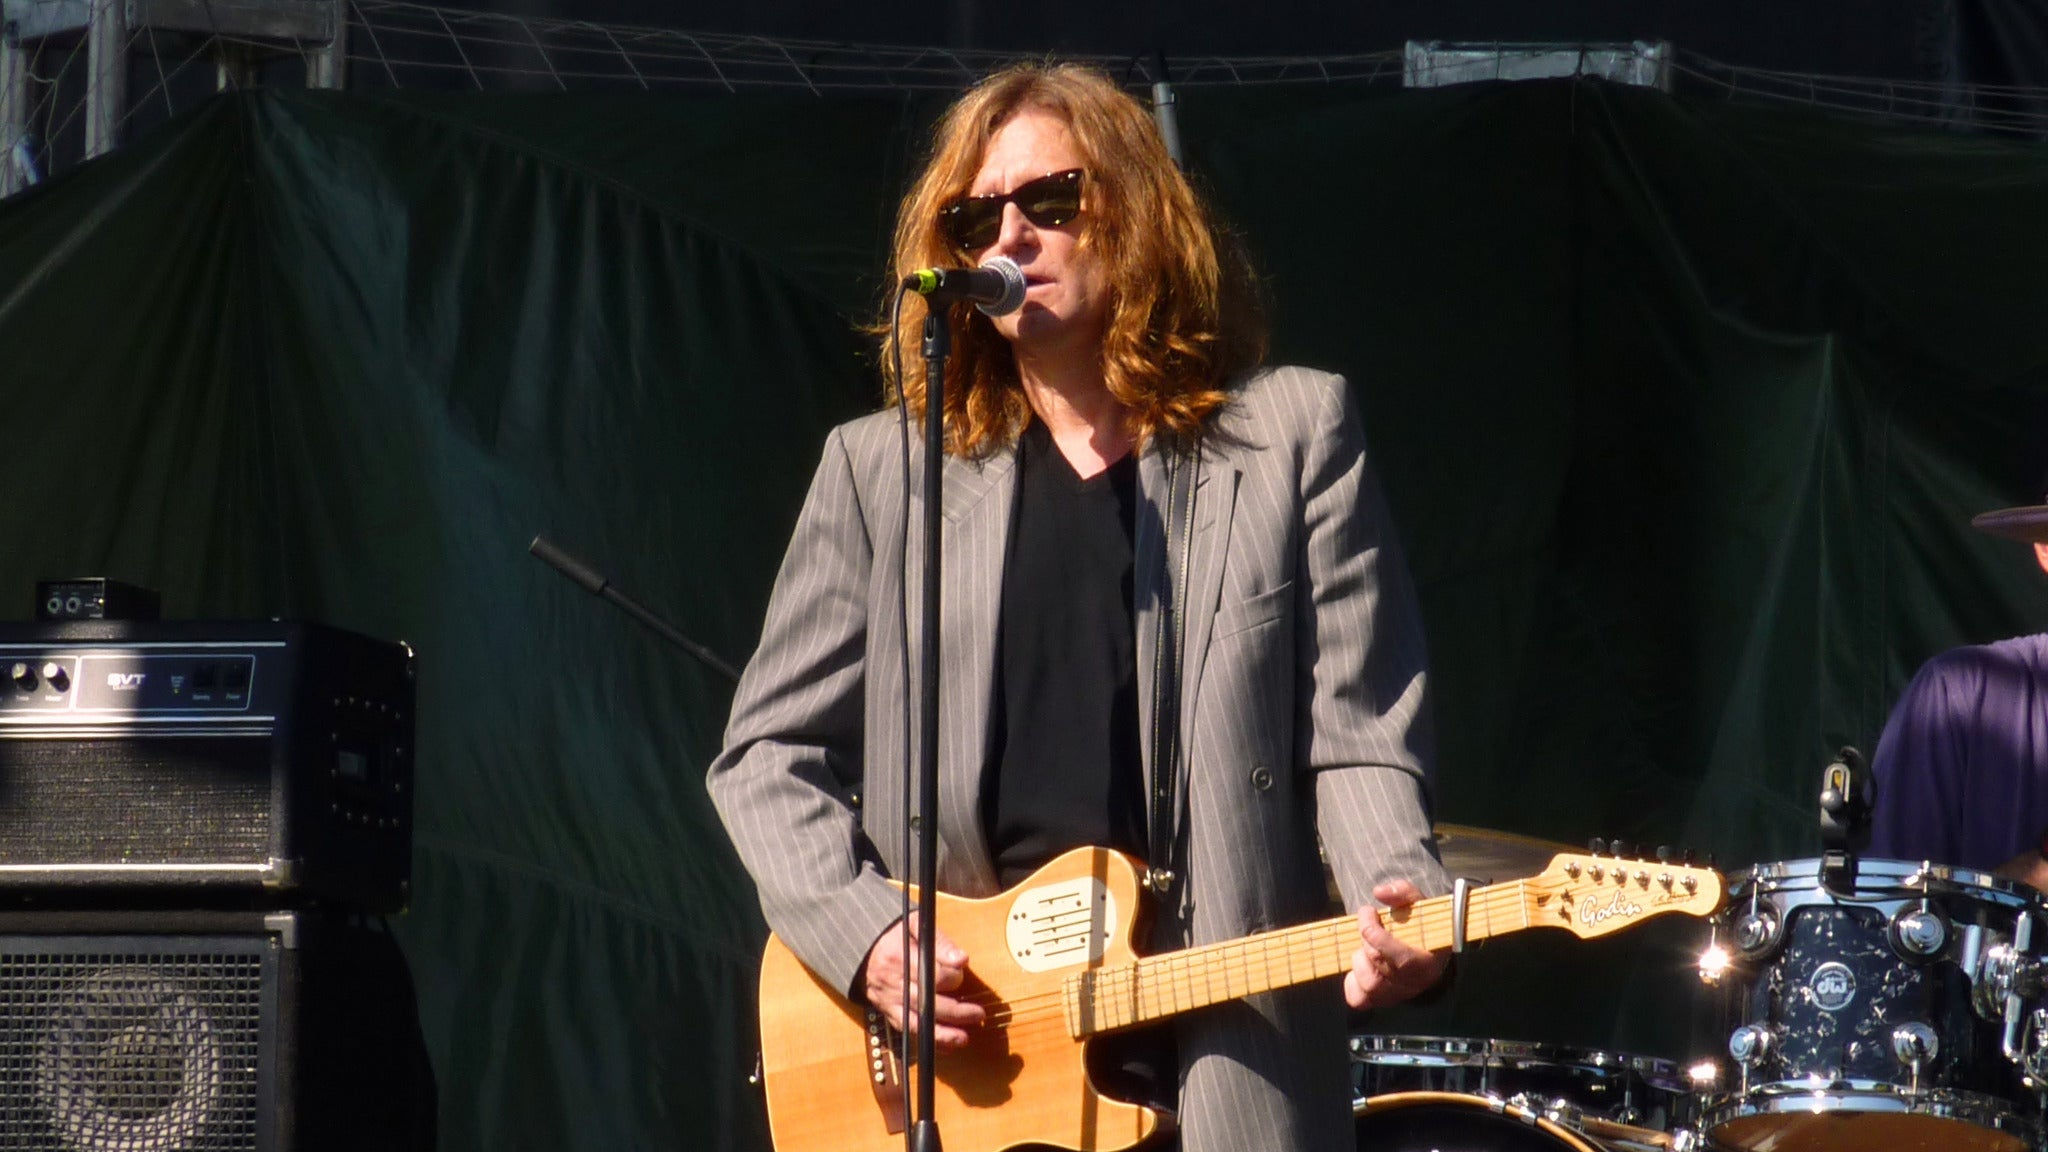 John Waite at The Canyon Agoura Hills